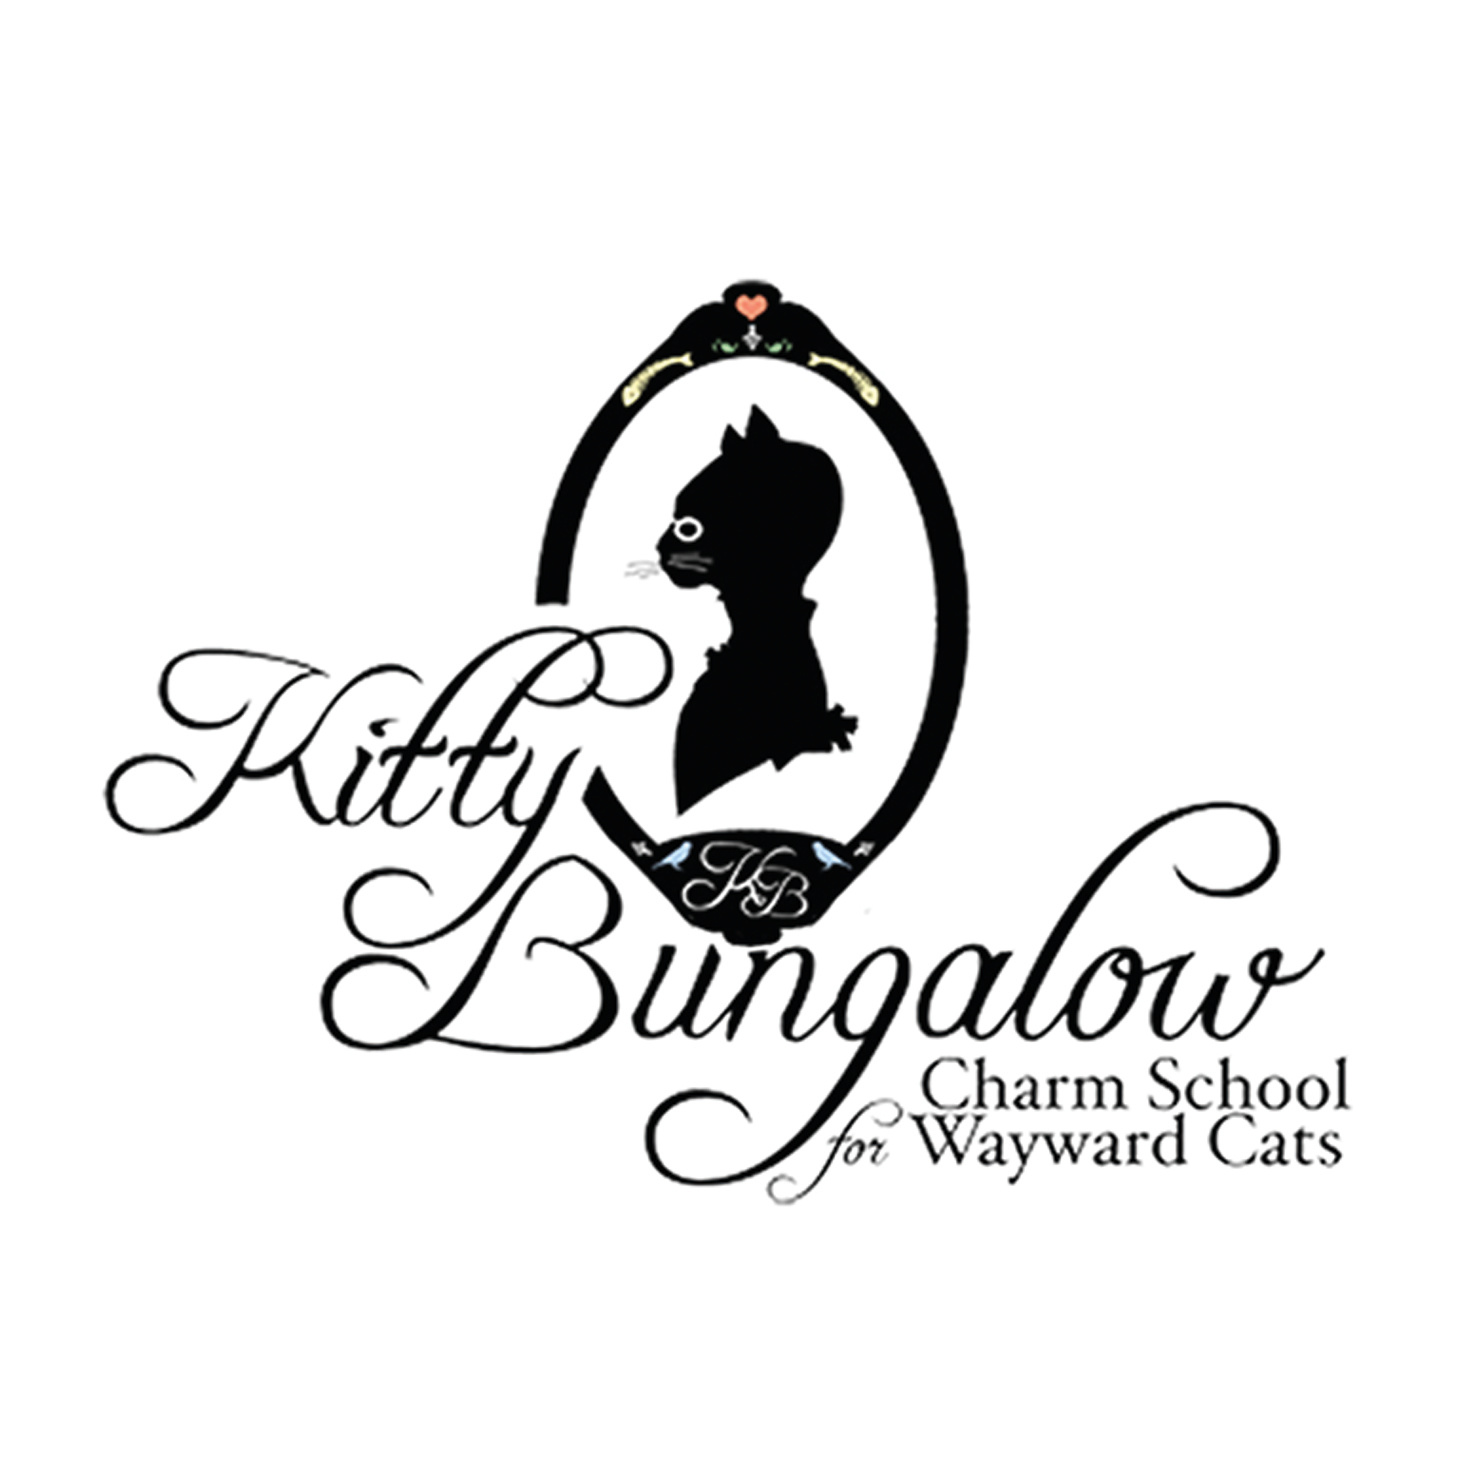 Kitty Bungalow Charm School for Wayward Cats